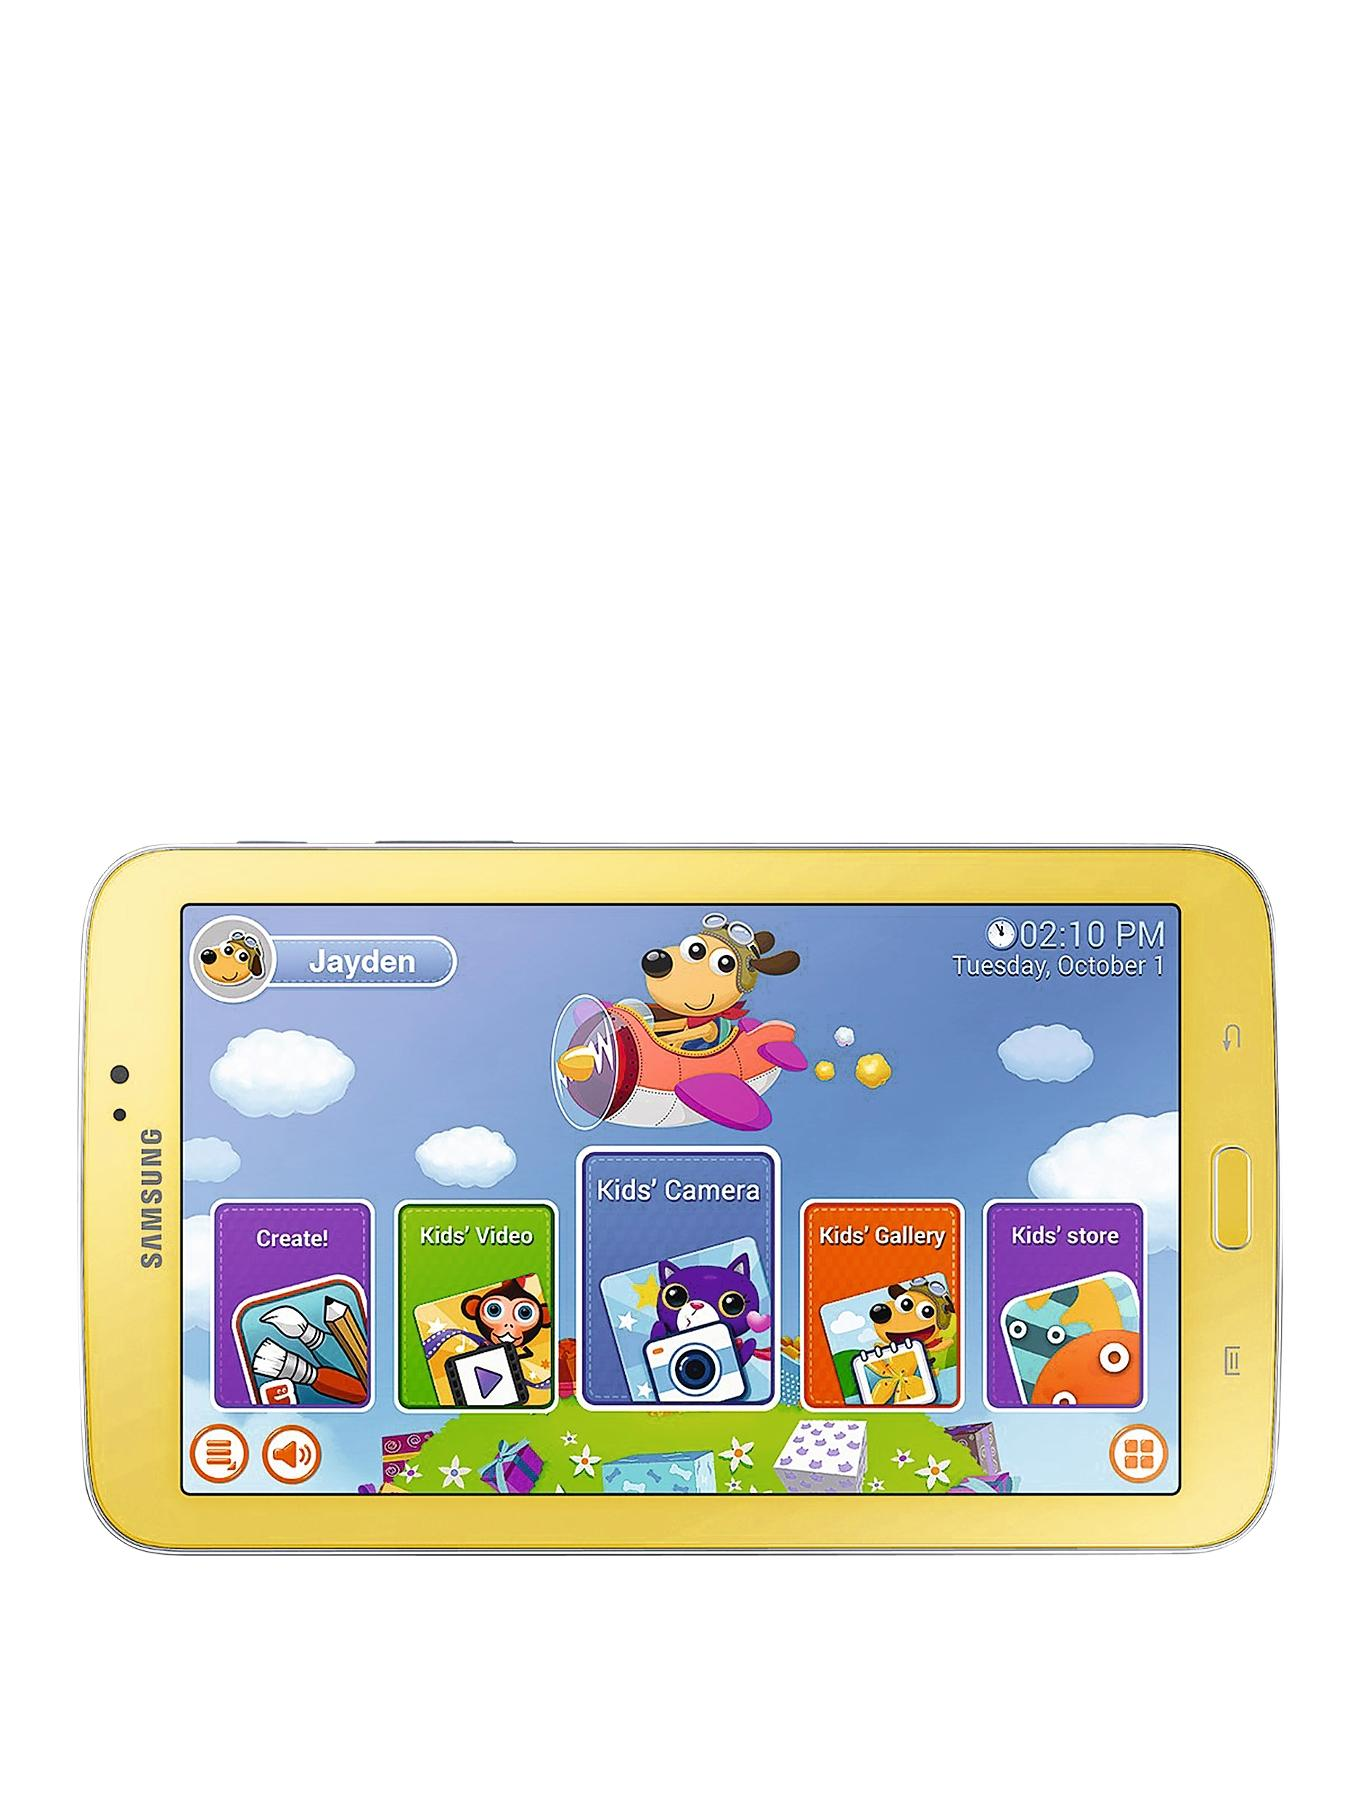 Galaxy Tab 3 Kids Dual Core Processor, 1Gb RAM, 8Gb Storage, Wi-Fi, 7 inch Tablet - Yellow, Yellow